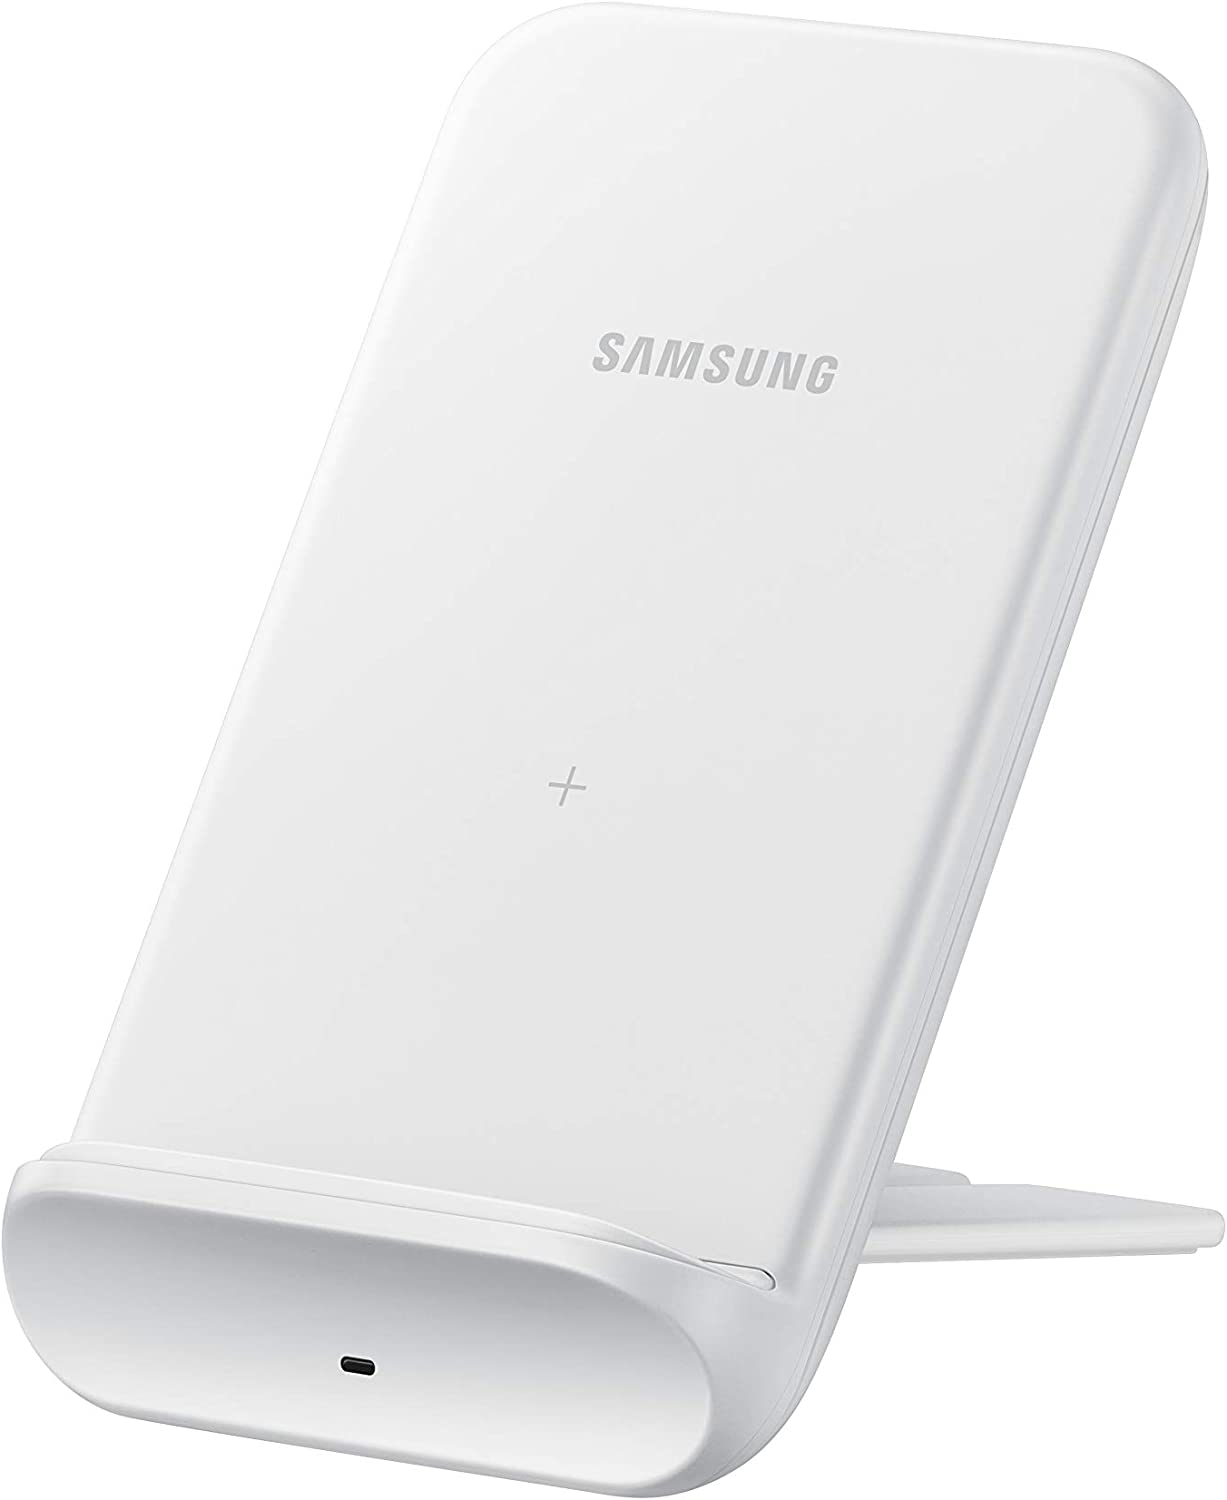 Samsung Electronics Wireless Charger Convertible Qi Certified (Pad/Stand) - for Galaxy Buds, Galaxy Phones, and Apple iPhone Devices - US Version - White (US Version)